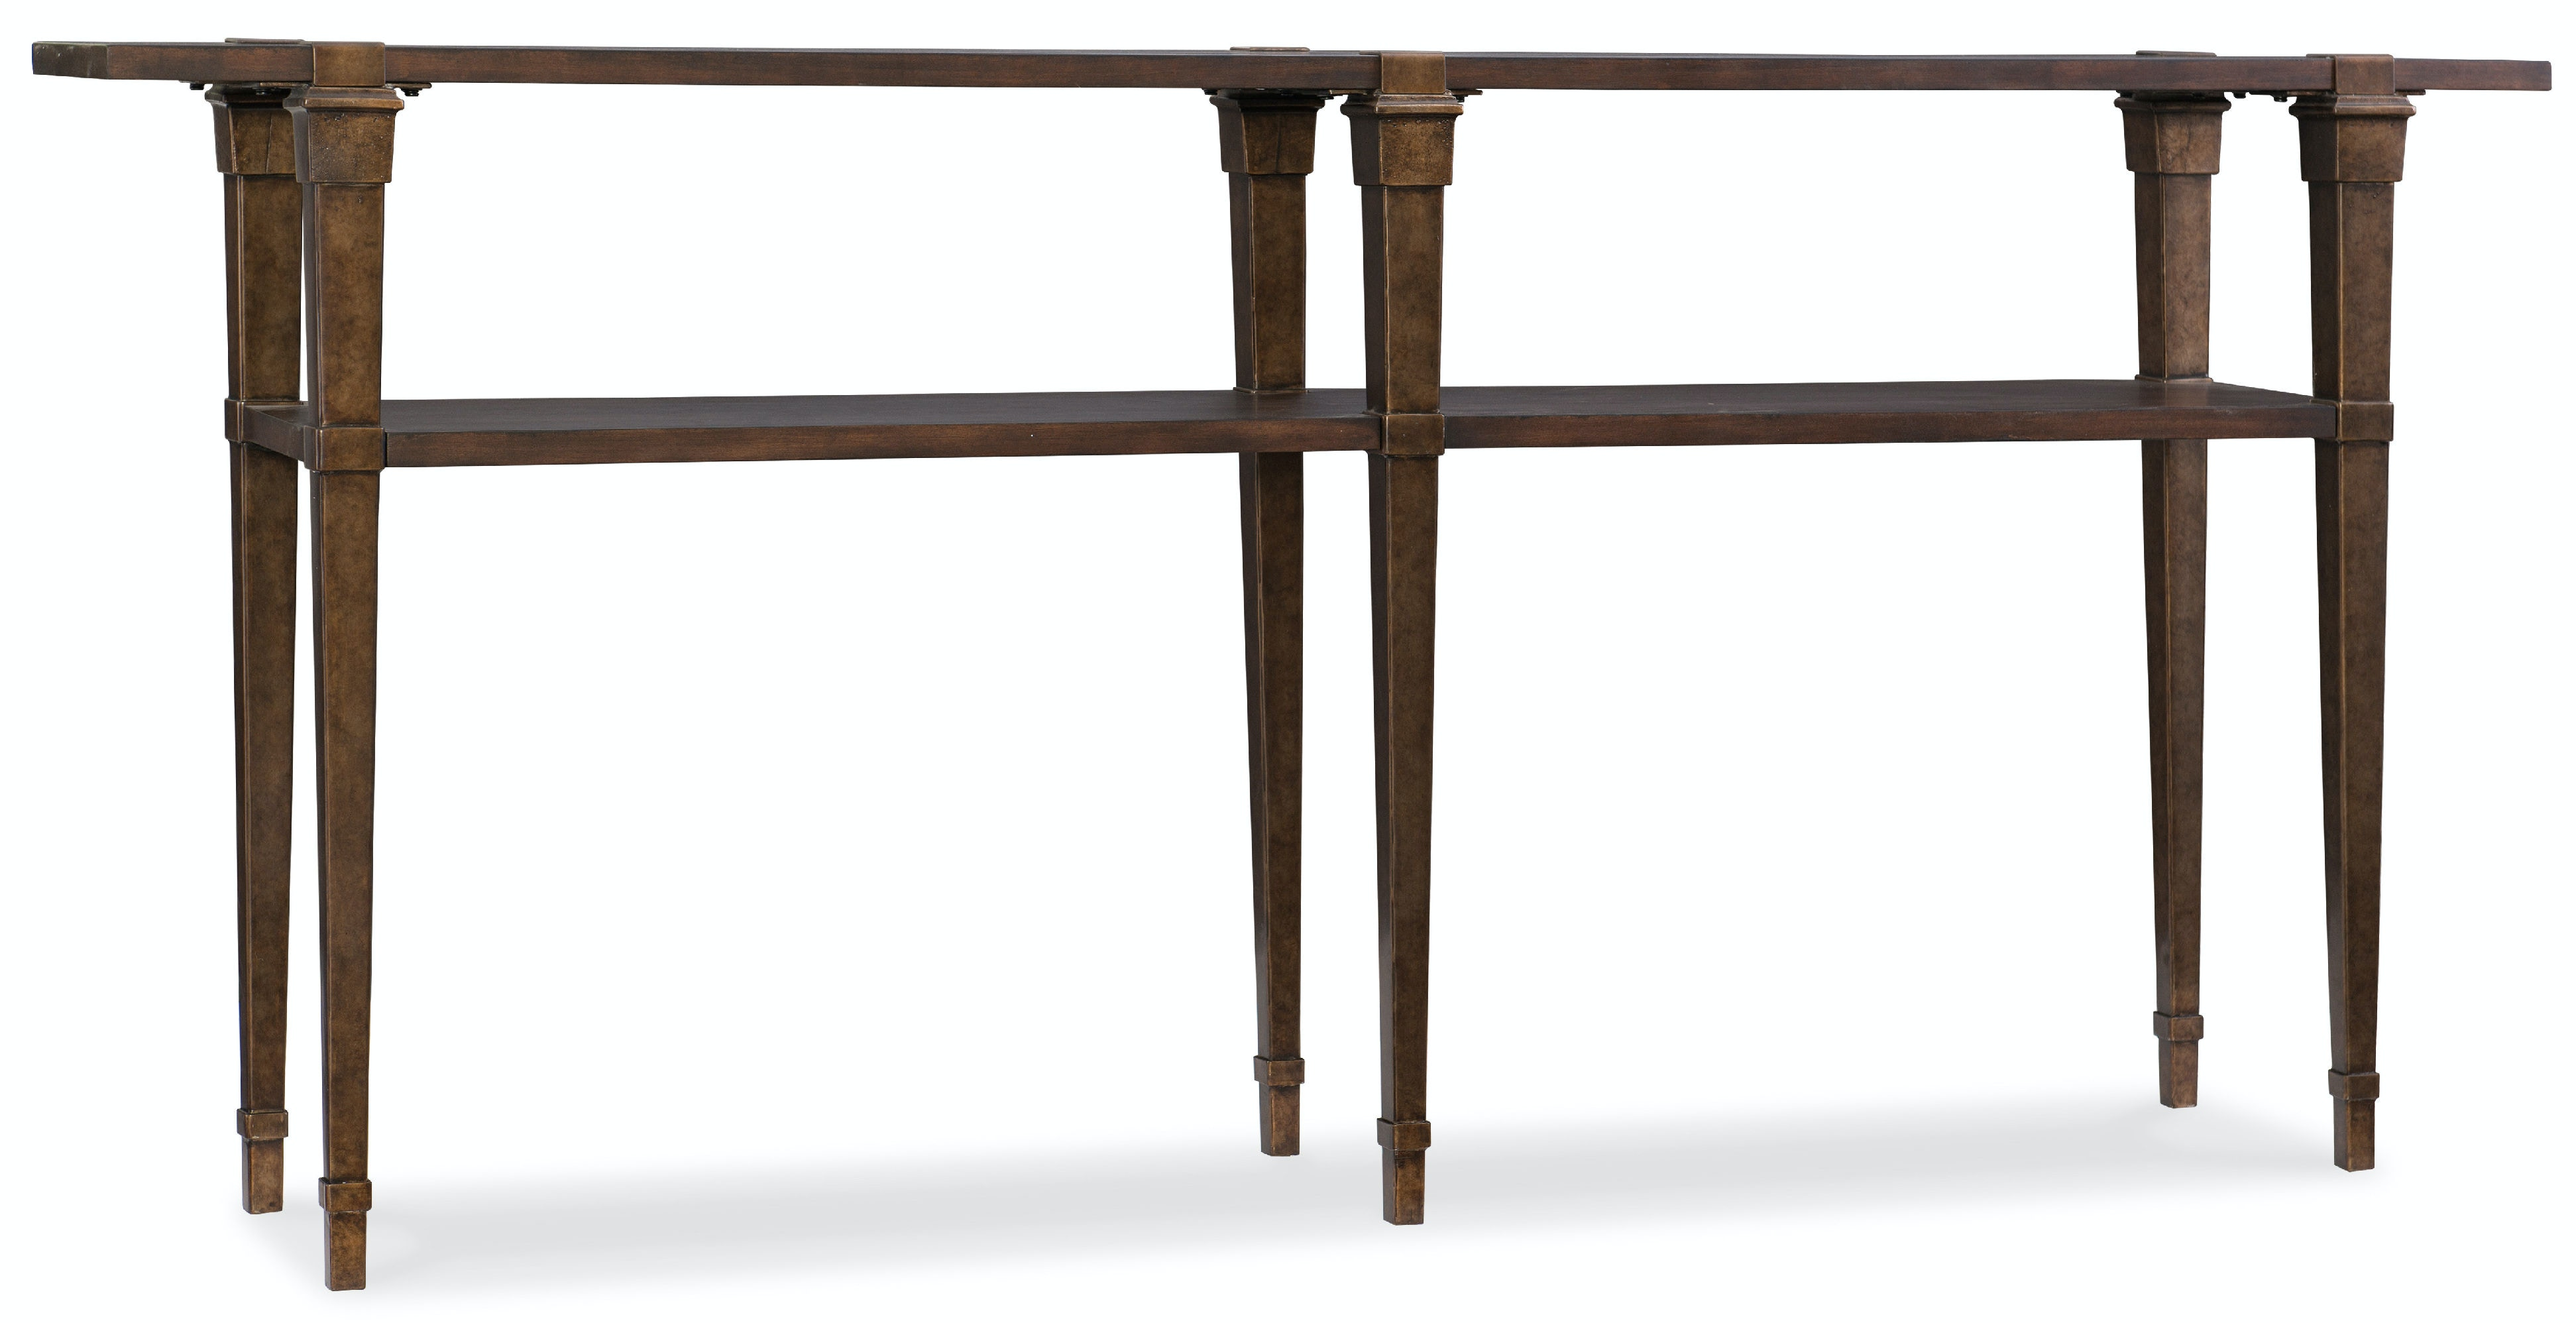 Attractive Hooker Furniture Skinny Console Table 5589 85001 DKW